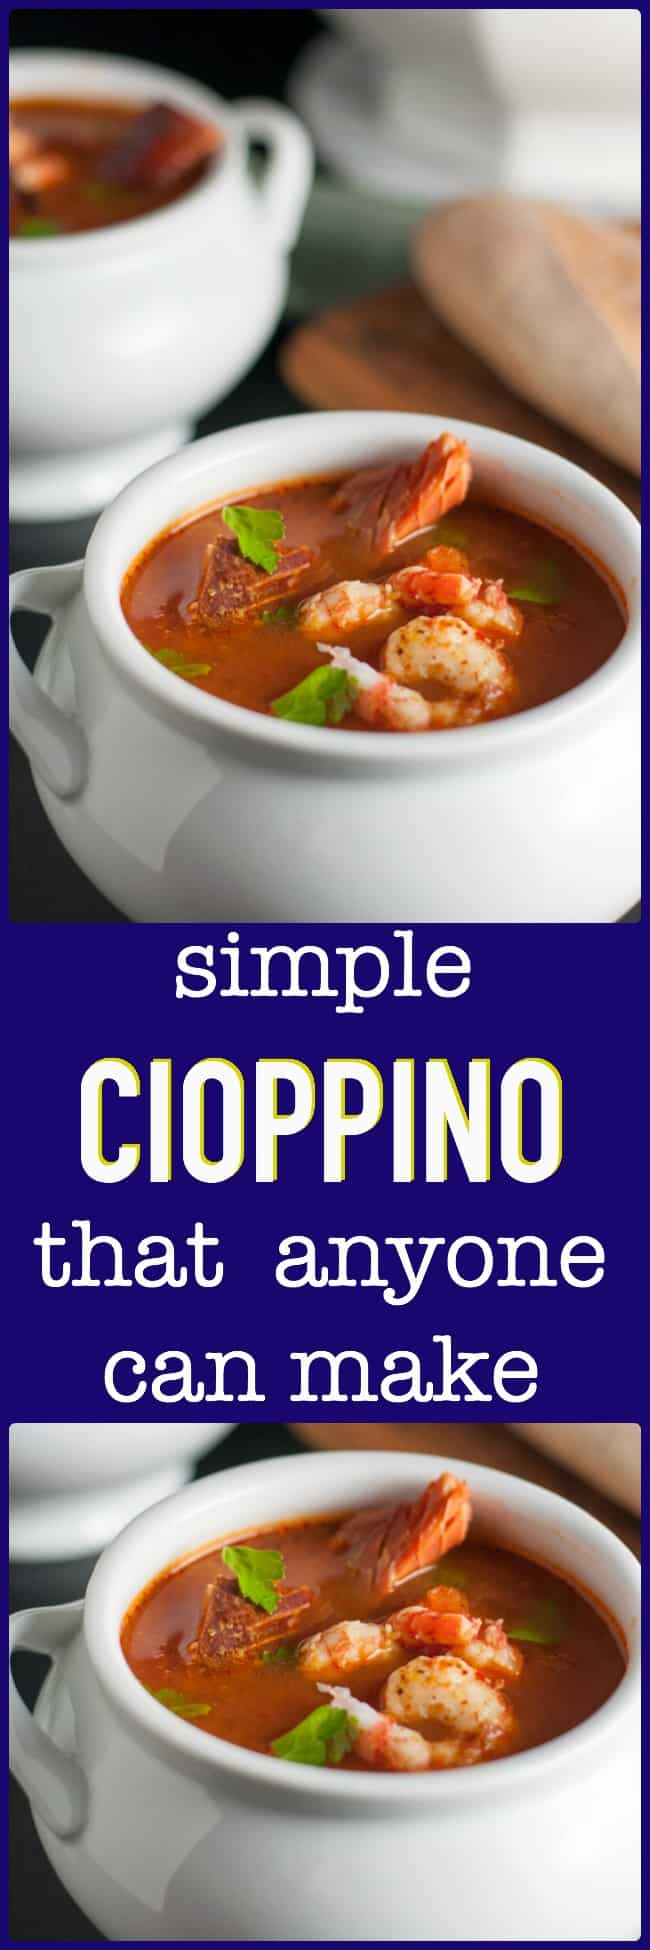 Simple Cioppino that anyone can make. Cioppino is a fabulous fish stew that originated in San Francisco and it featured in top restaurants. Here is a simple way to make it at home, using whatever seafood is available where you live. Restaurant quality food from your own kitchen! Paleo and gluten-free.